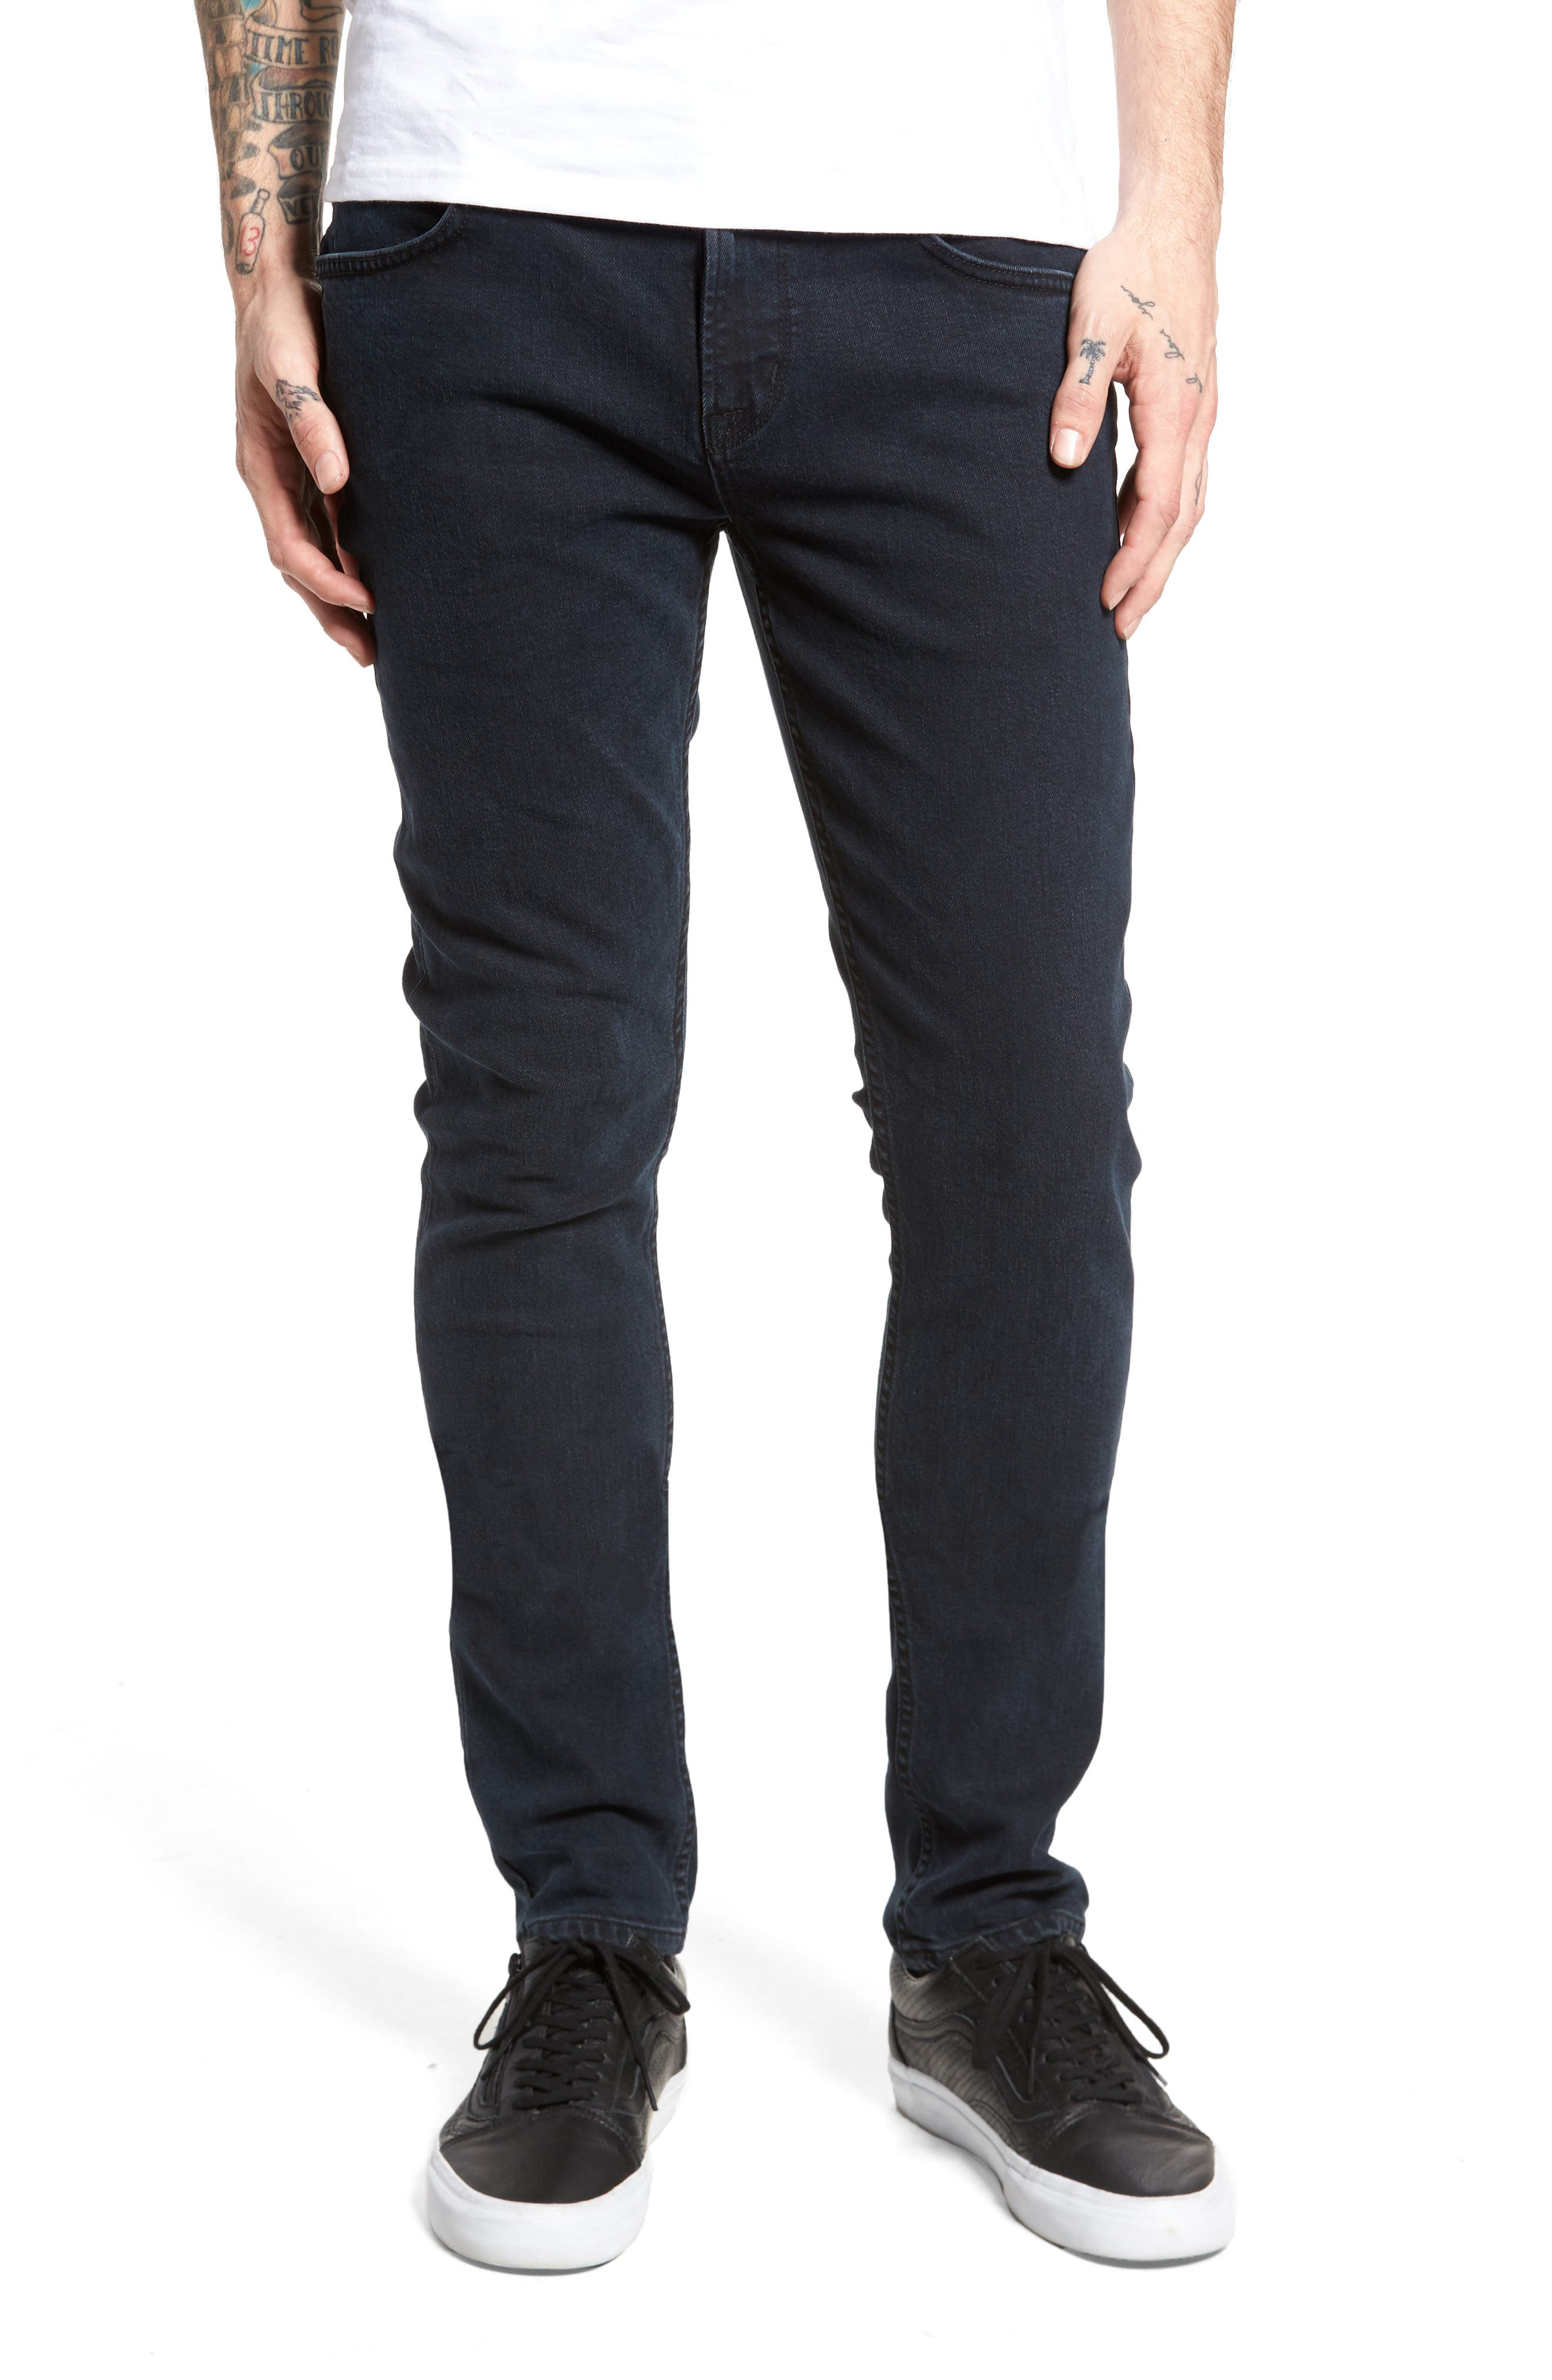 Main Image - Hudson Jeans Axl Skinny Fit Jeans (Sight Unseen)